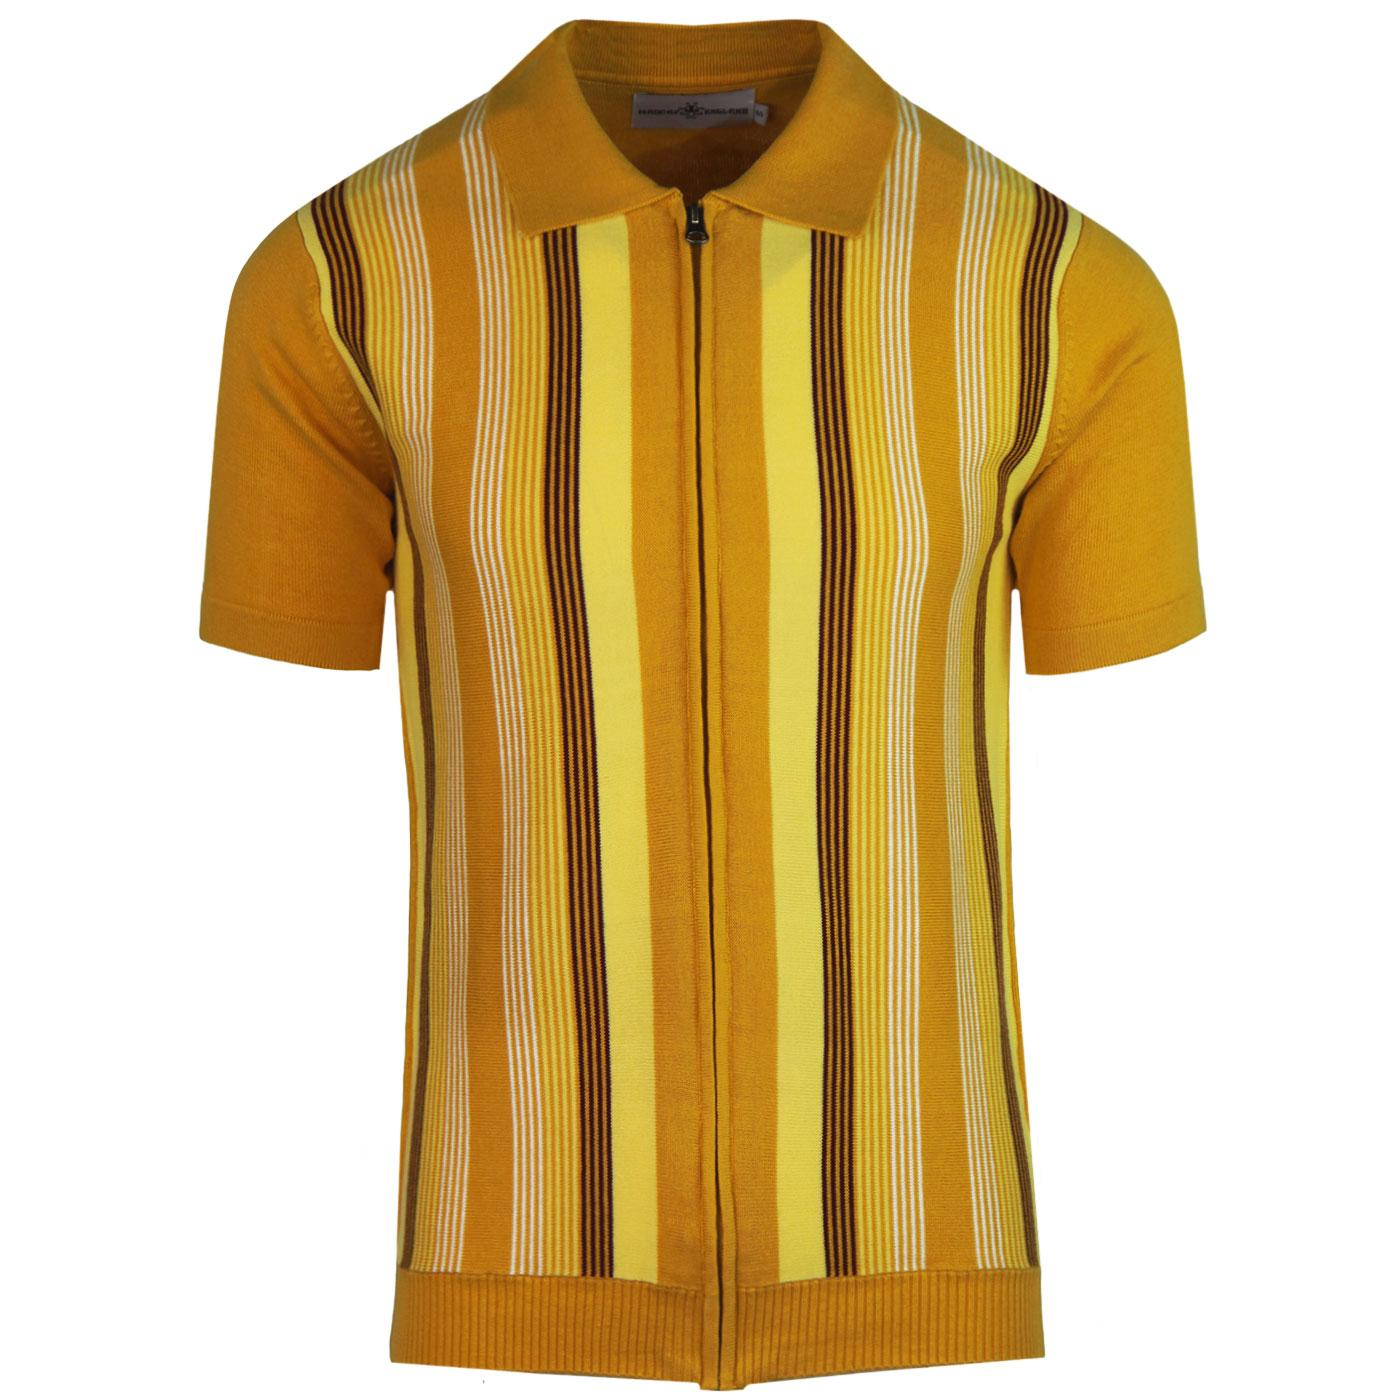 Madcap England Capitol 1960s Mod Stripe Zip Knit Polo Top in Golden Glow